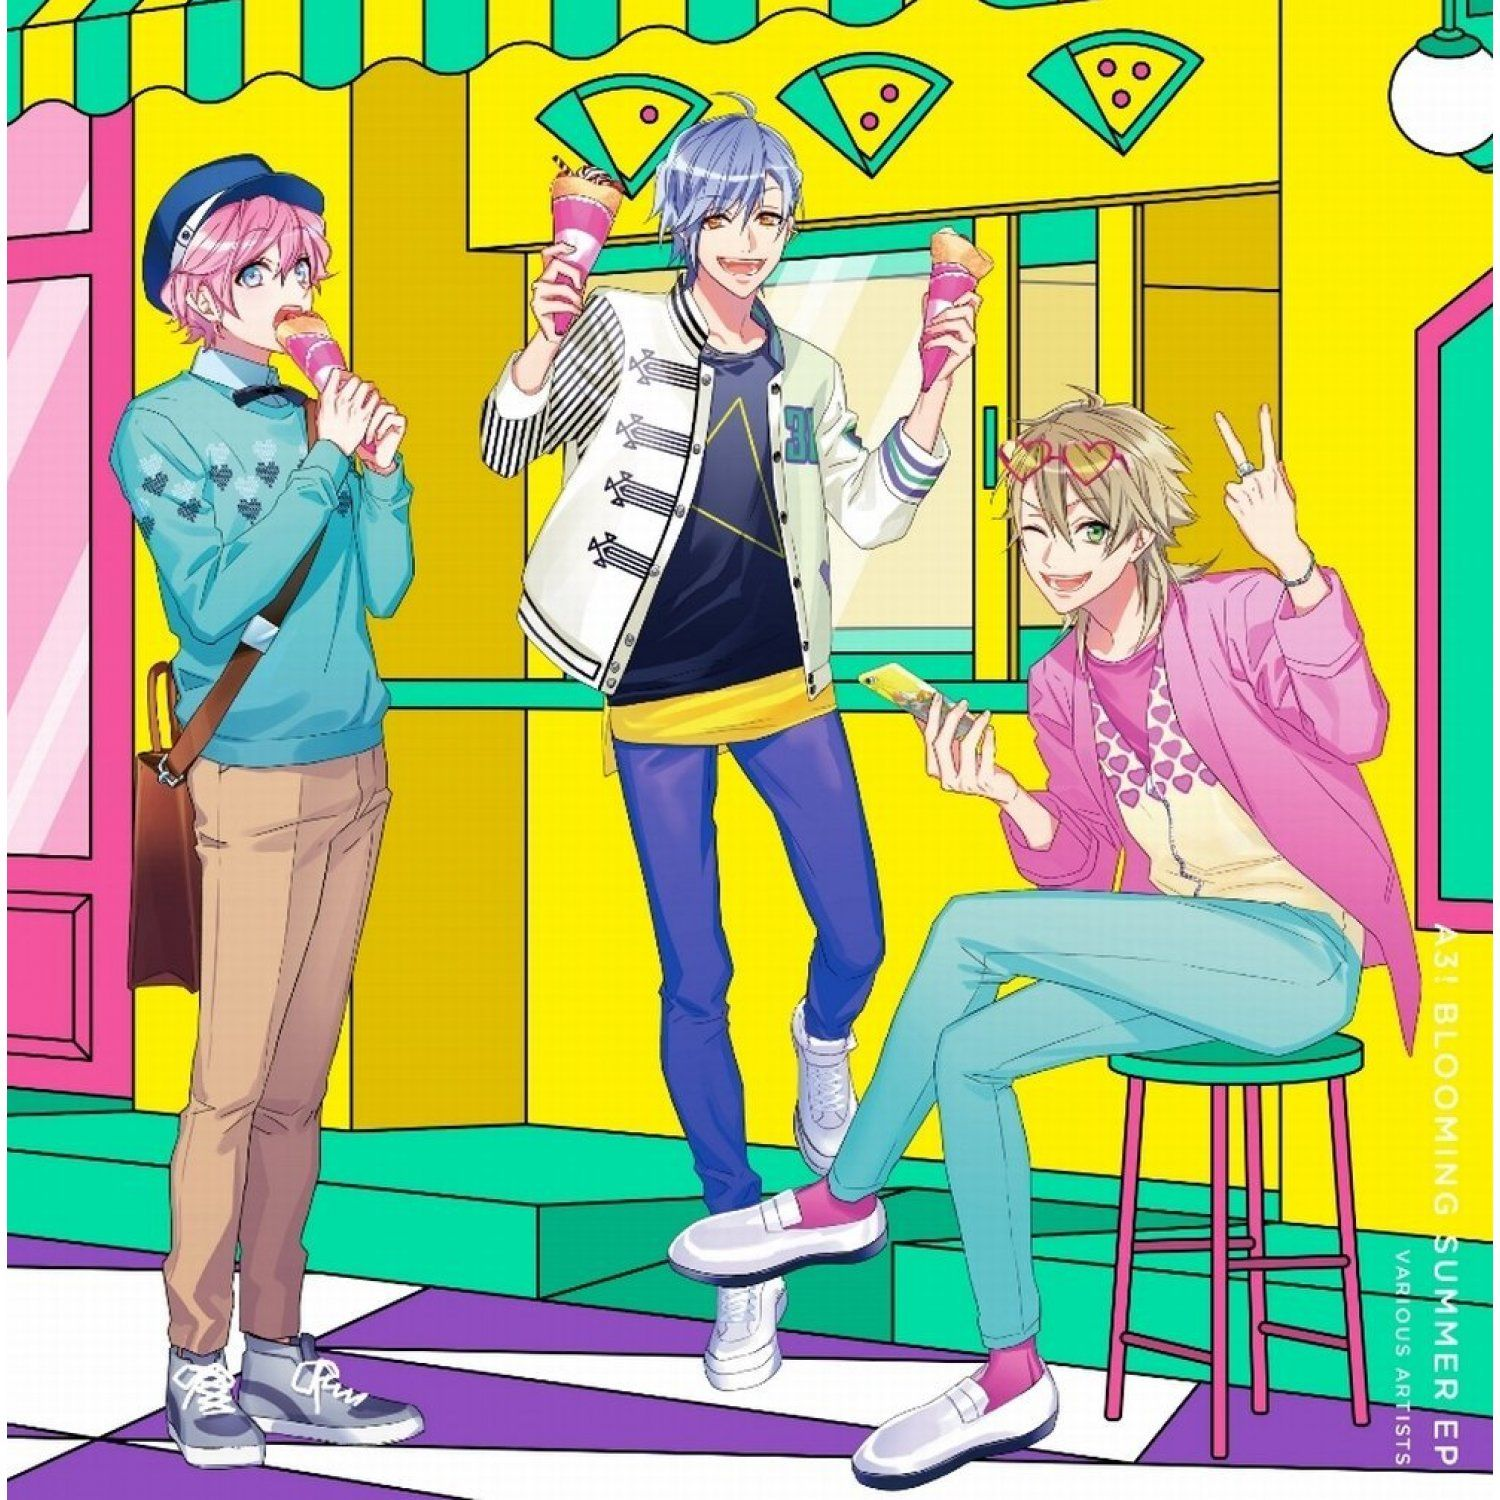 A3! Blooming Summer Ep Anime gangster, Anime guys, Boy poses